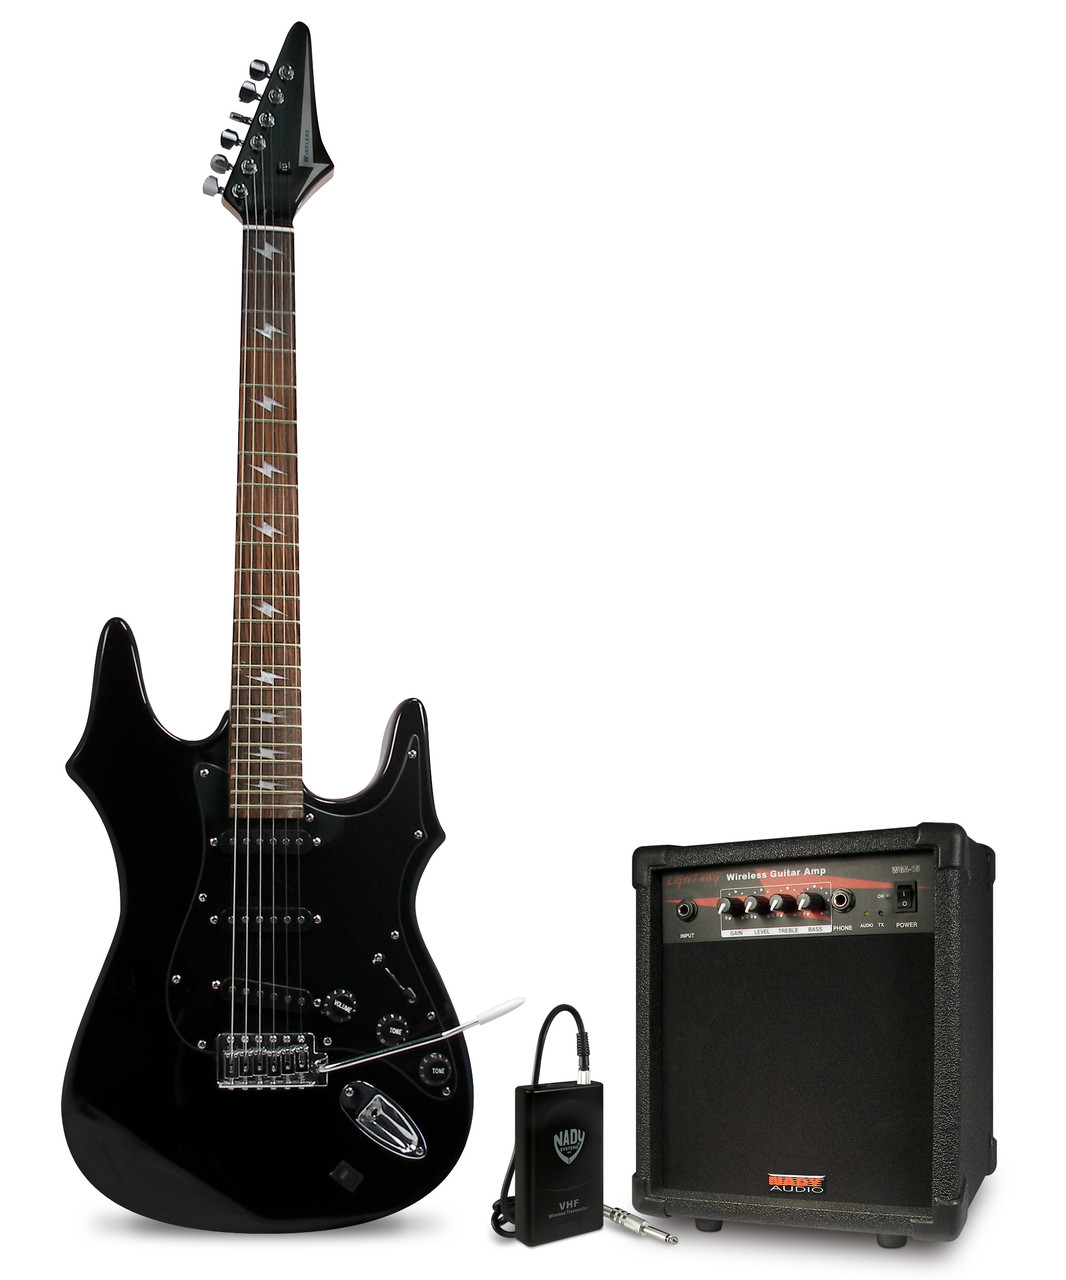 Lightning Wireless Guitar pack with Amp Discontinued